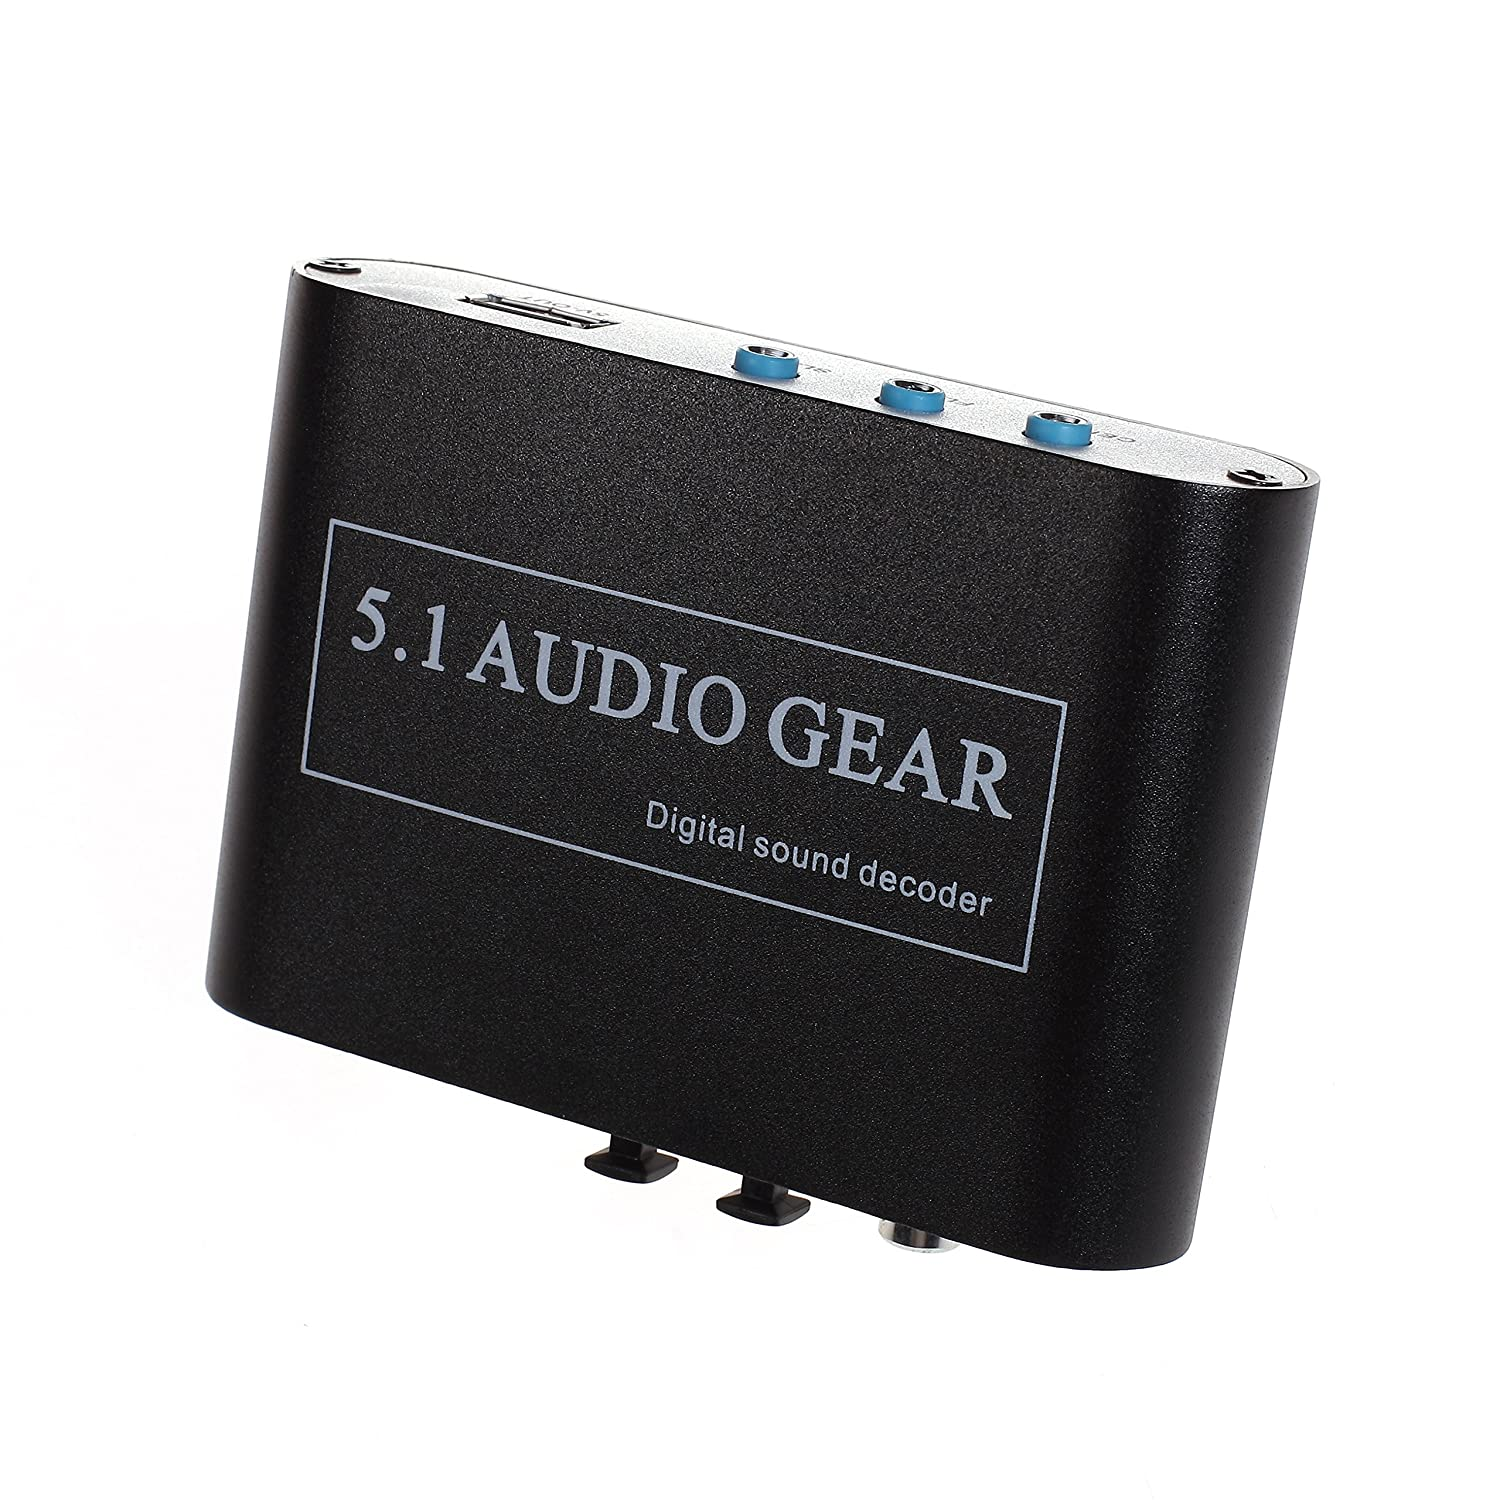 Panlong 51 Audio Gear Digital Sound Decoder Converter Rca Surround Wiring Diagram Optical Spdif Coaxial Dolby Ac3 Dts To 51ch Analog Electronics